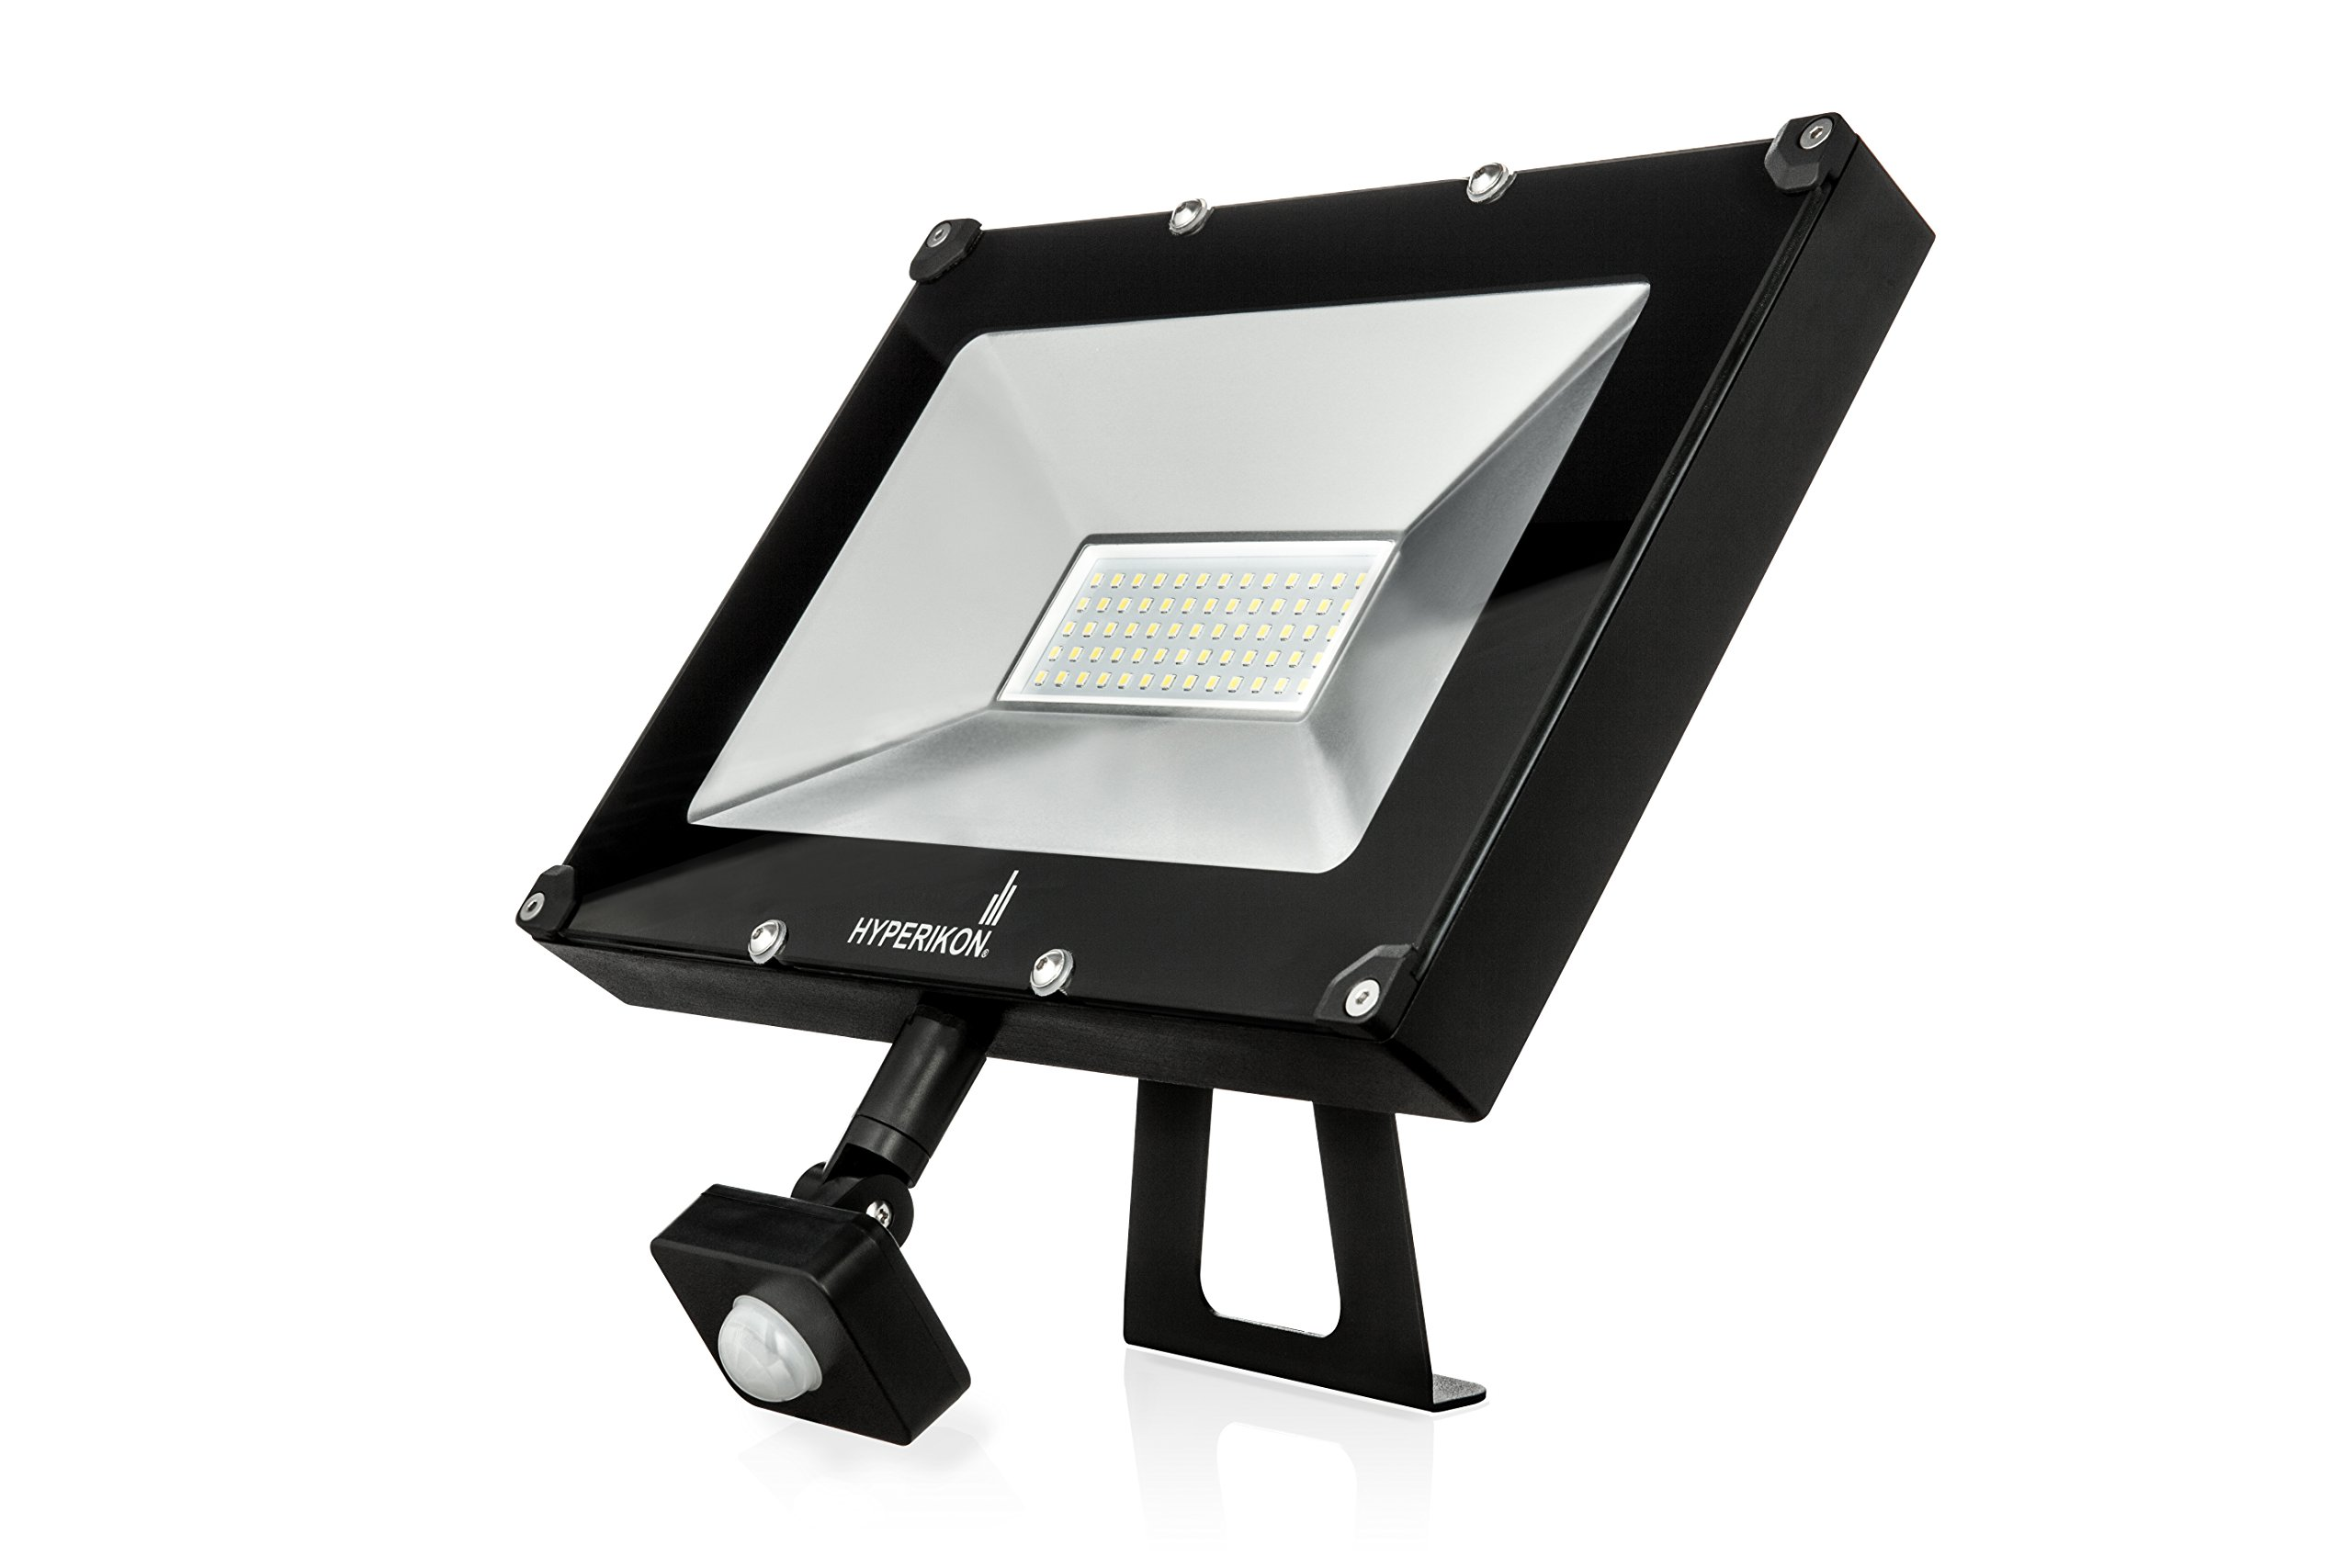 Hyperikon LED Motion Sensor Light 50W (200W Equivalent), Outdoor Flood Light, 4000 Lumens, 5000K (Crystal White Glow), LED Security Light, 120v, IP65 Waterproof - for Overhead Lighting, Security